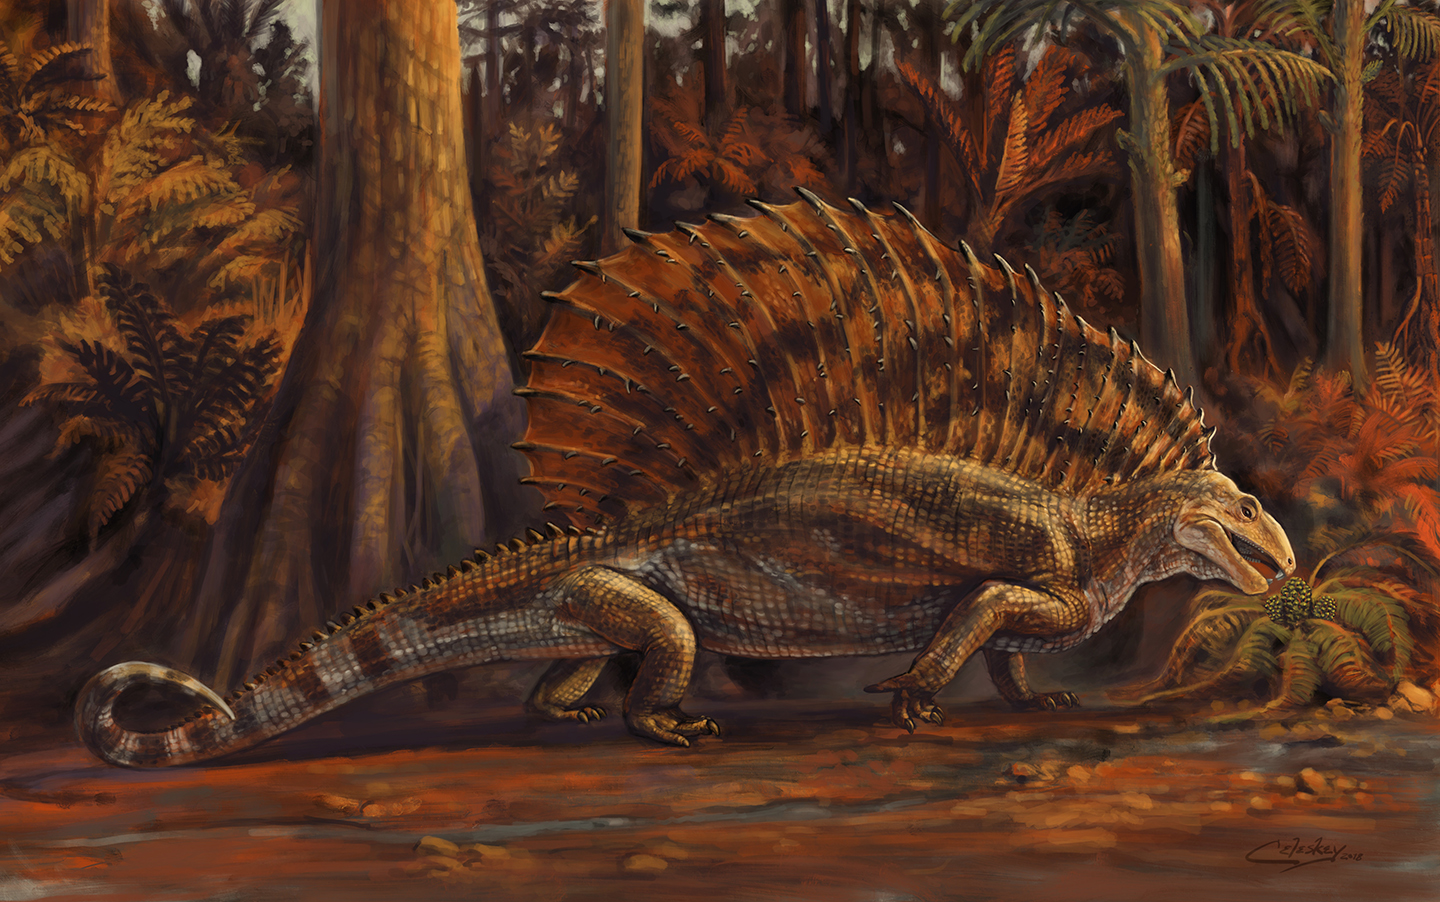 Illustration of the edaphosaurid Gordodon, illustrated by Matt Celeskey. Shared here with the artist's permission.